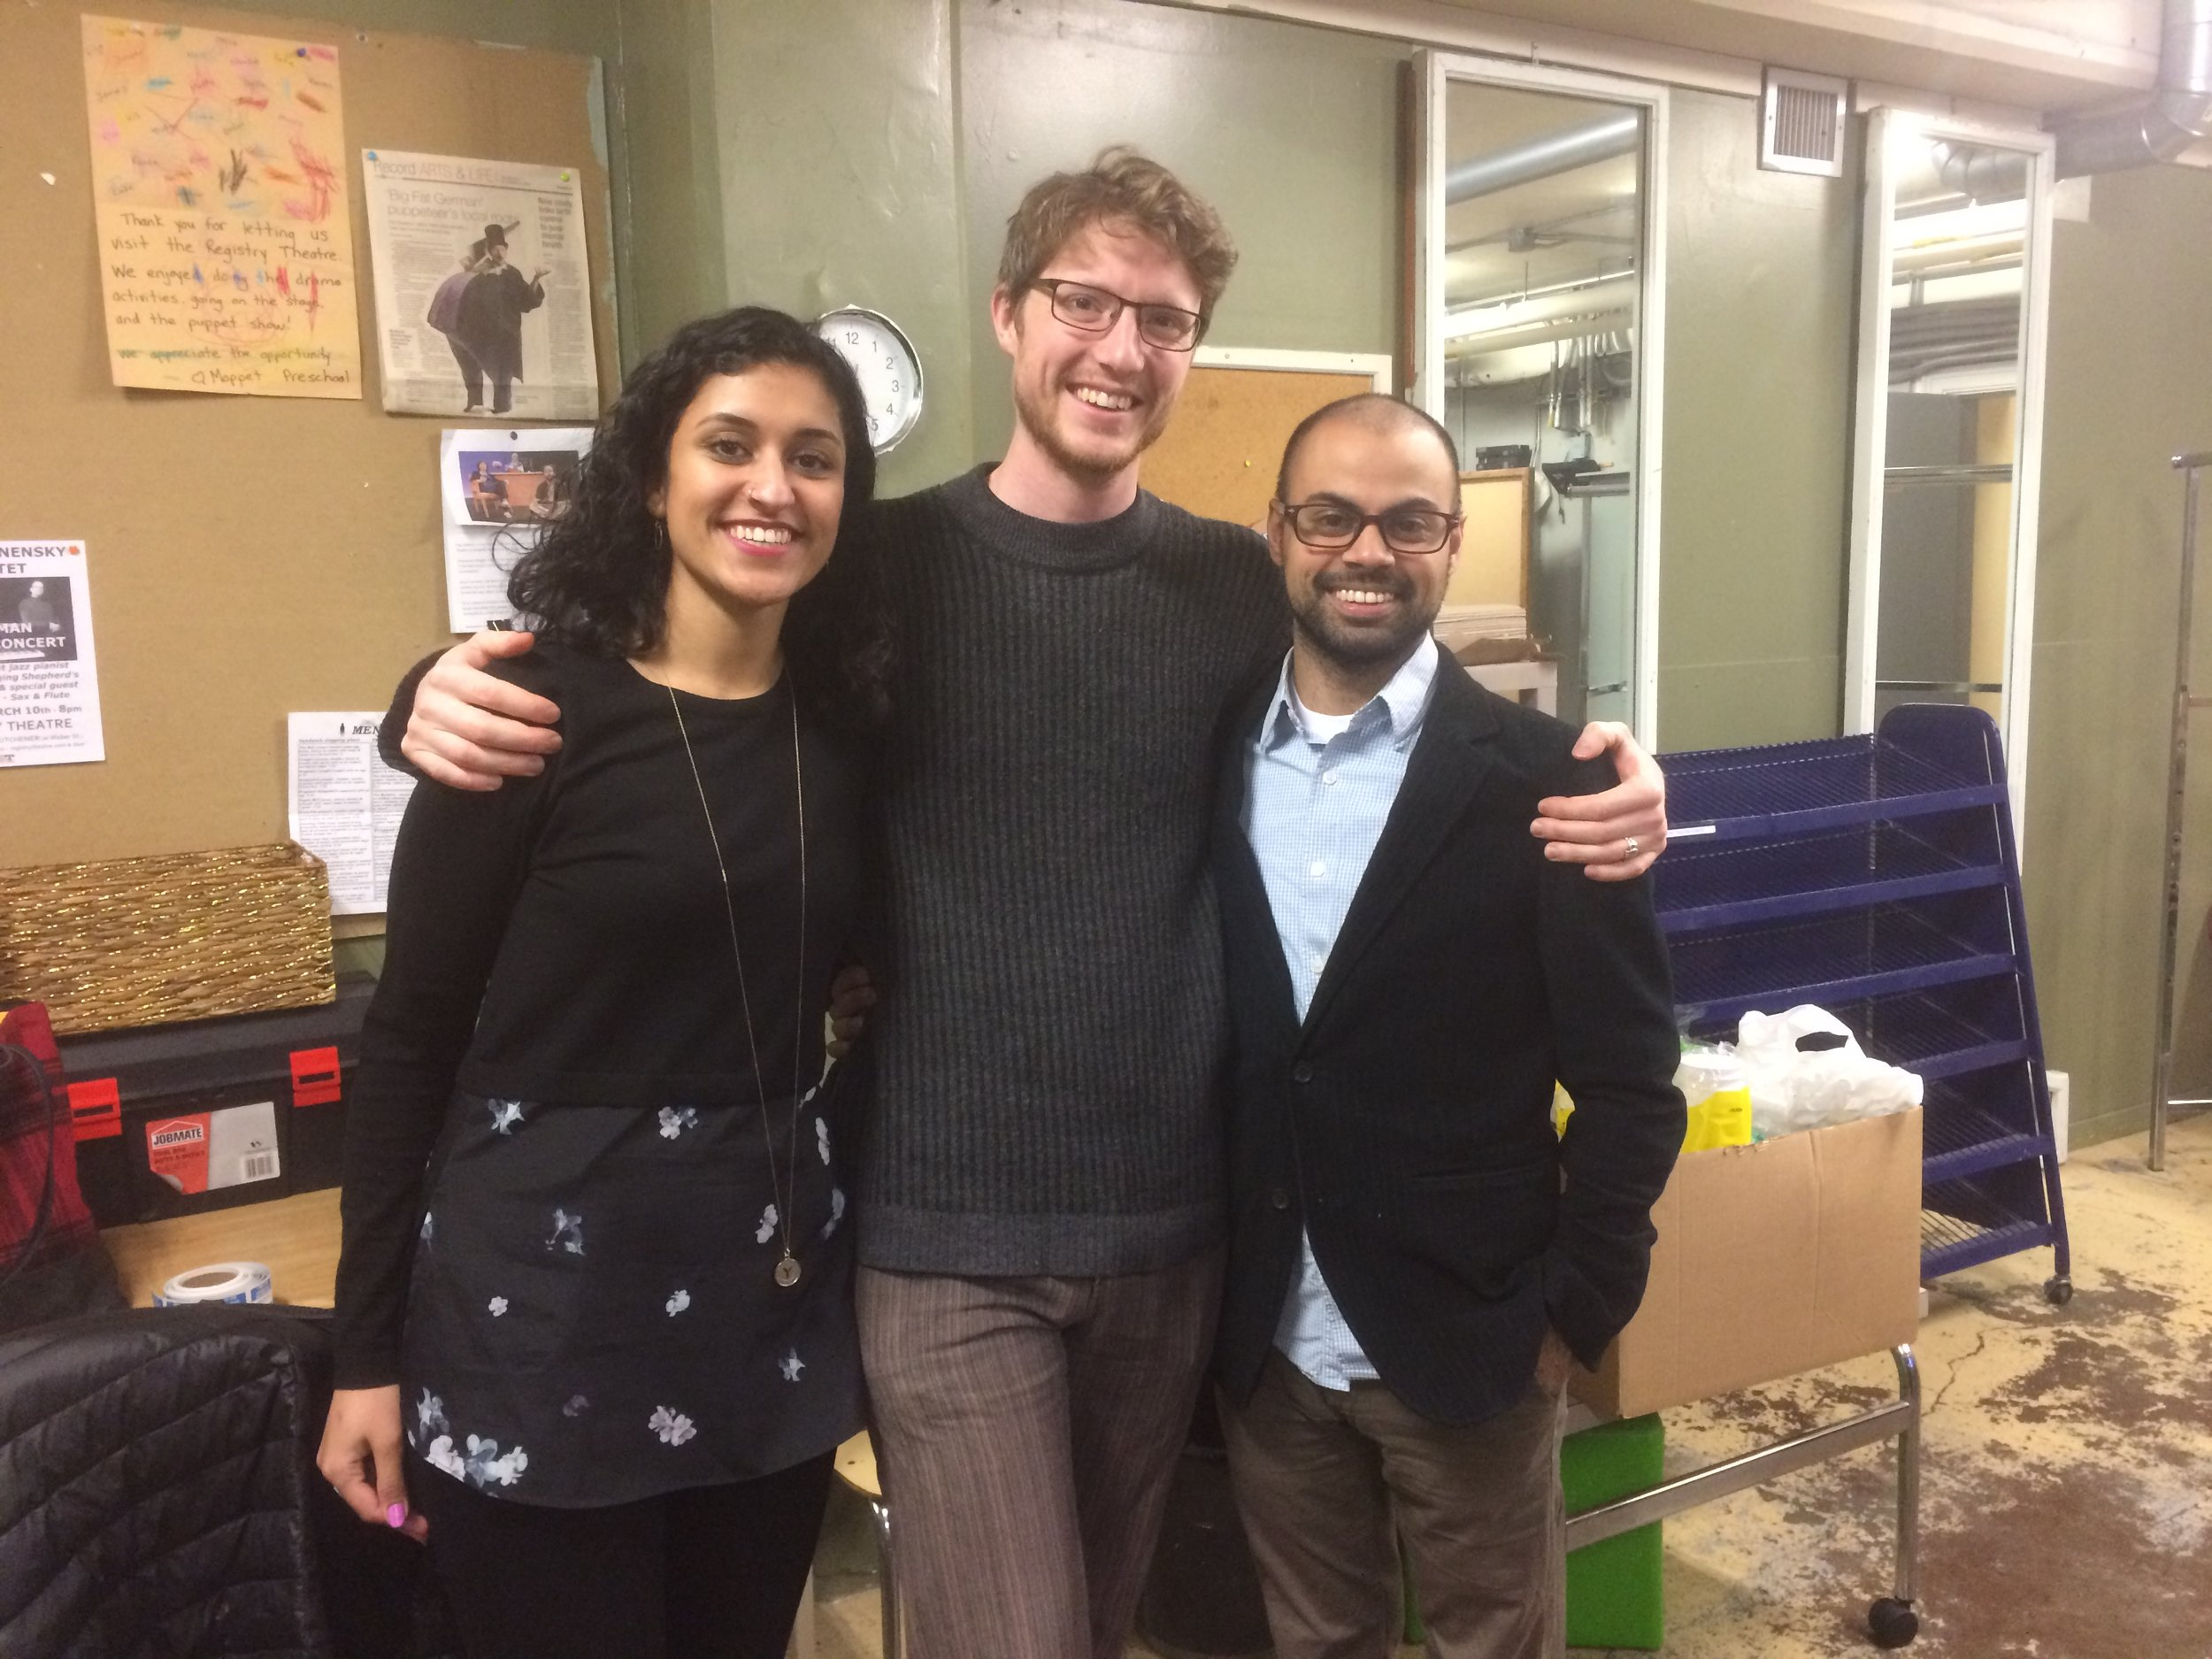 The Informal Upright Crew - from left to right: Sukhpreet Sangha, Ciarán Myers, and Shawn DeSouza-Coelho